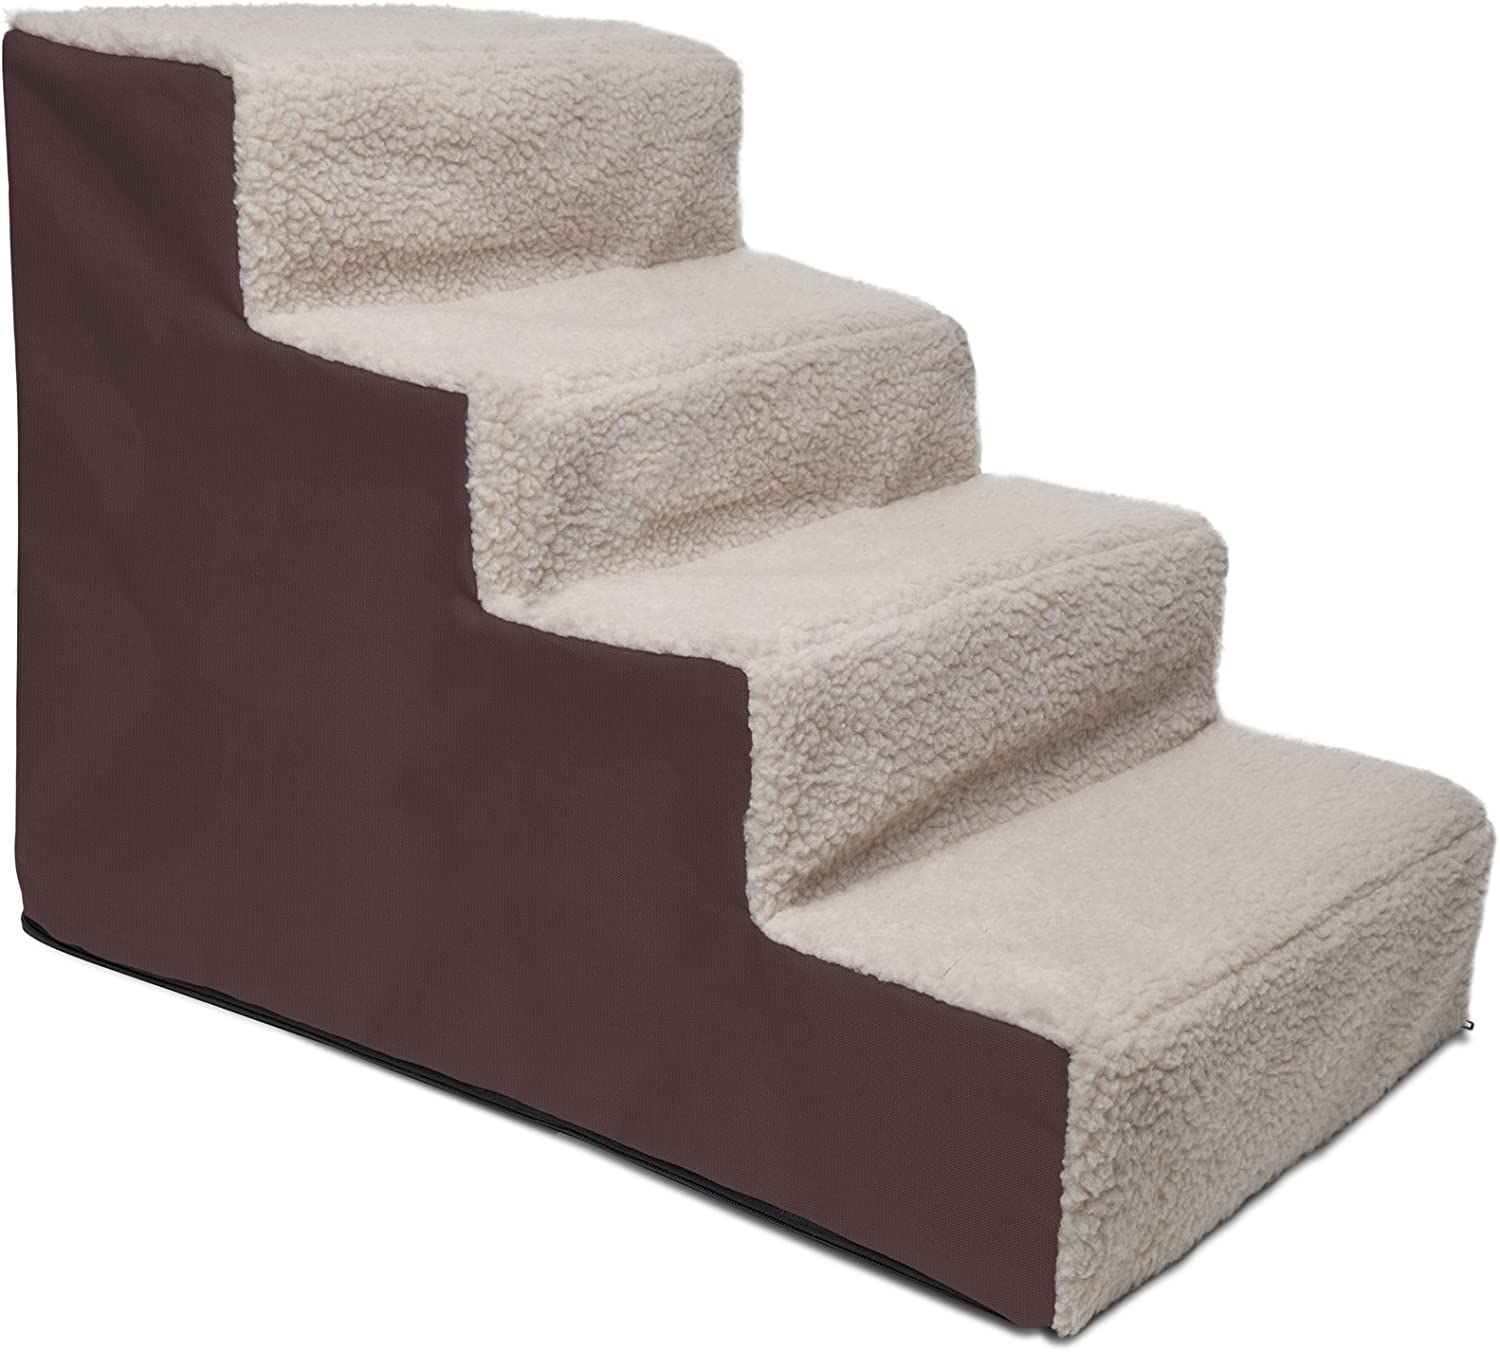 Paws Pals Dog Stairs to get on High Bed for Cat and Pet Steps at Home or Portable Travel Up to 175 lbs – Brown